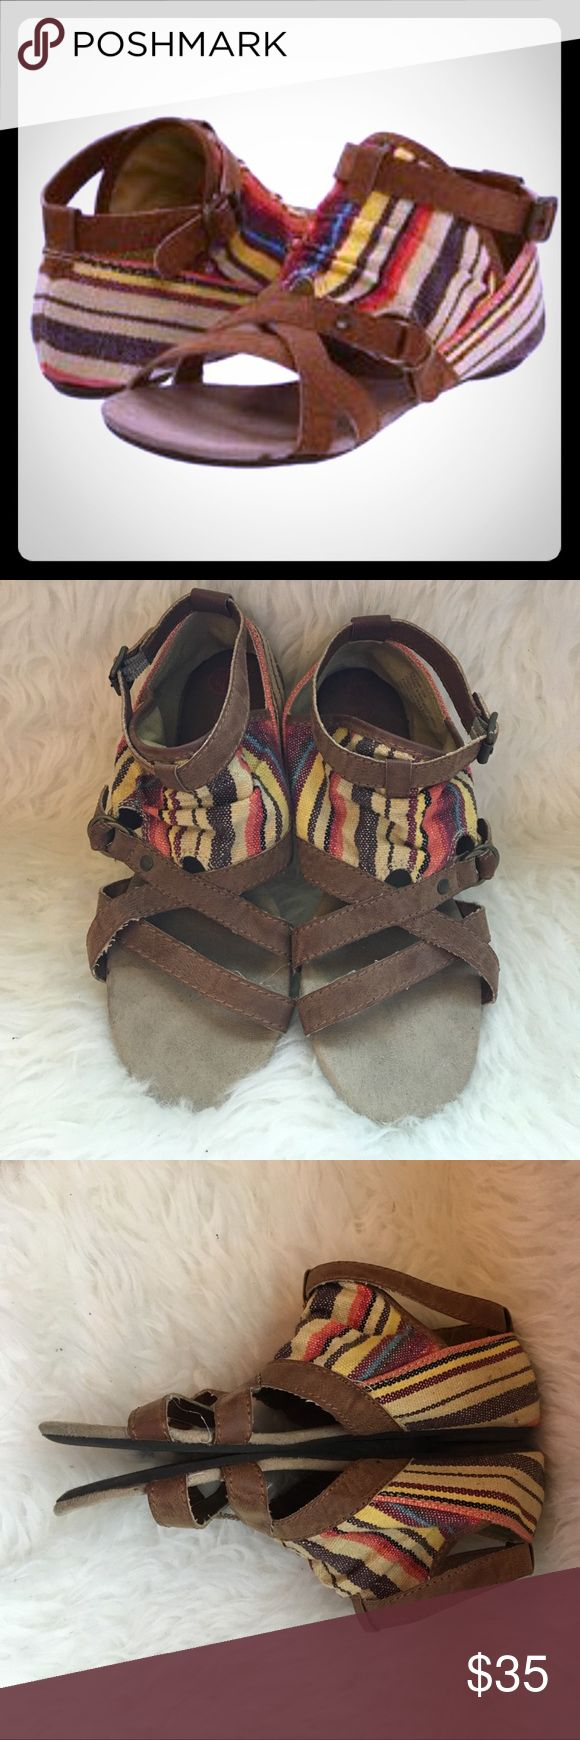 Big Buddha tapestry sandals Have fun in the sun with these Big Buddha tapestry sandals. These sandals would be great for a fun night on the town or to dance in at a concert. Only worn twice. Wear and tear is very minimal. On the sole by the toe is a little worn out. Big Buddha Shoes Sandals